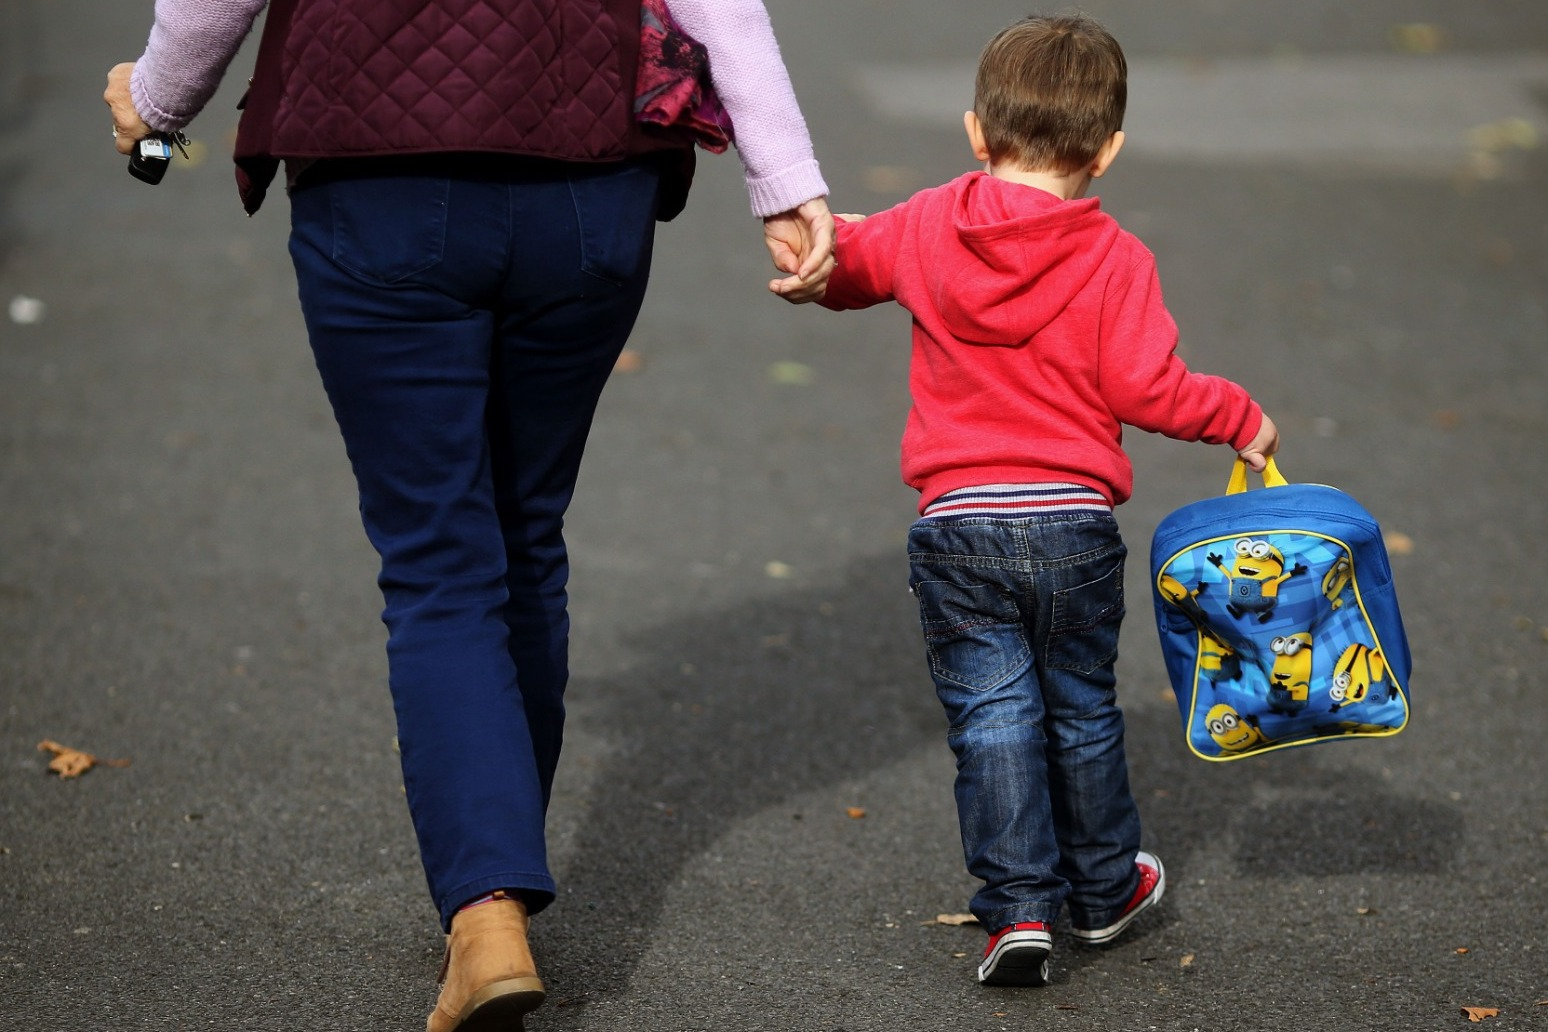 CHILD POVERTY WOULD REACH RECORD HIGHS IF TORIES RE-ELECTED, THINK TANK SAYS